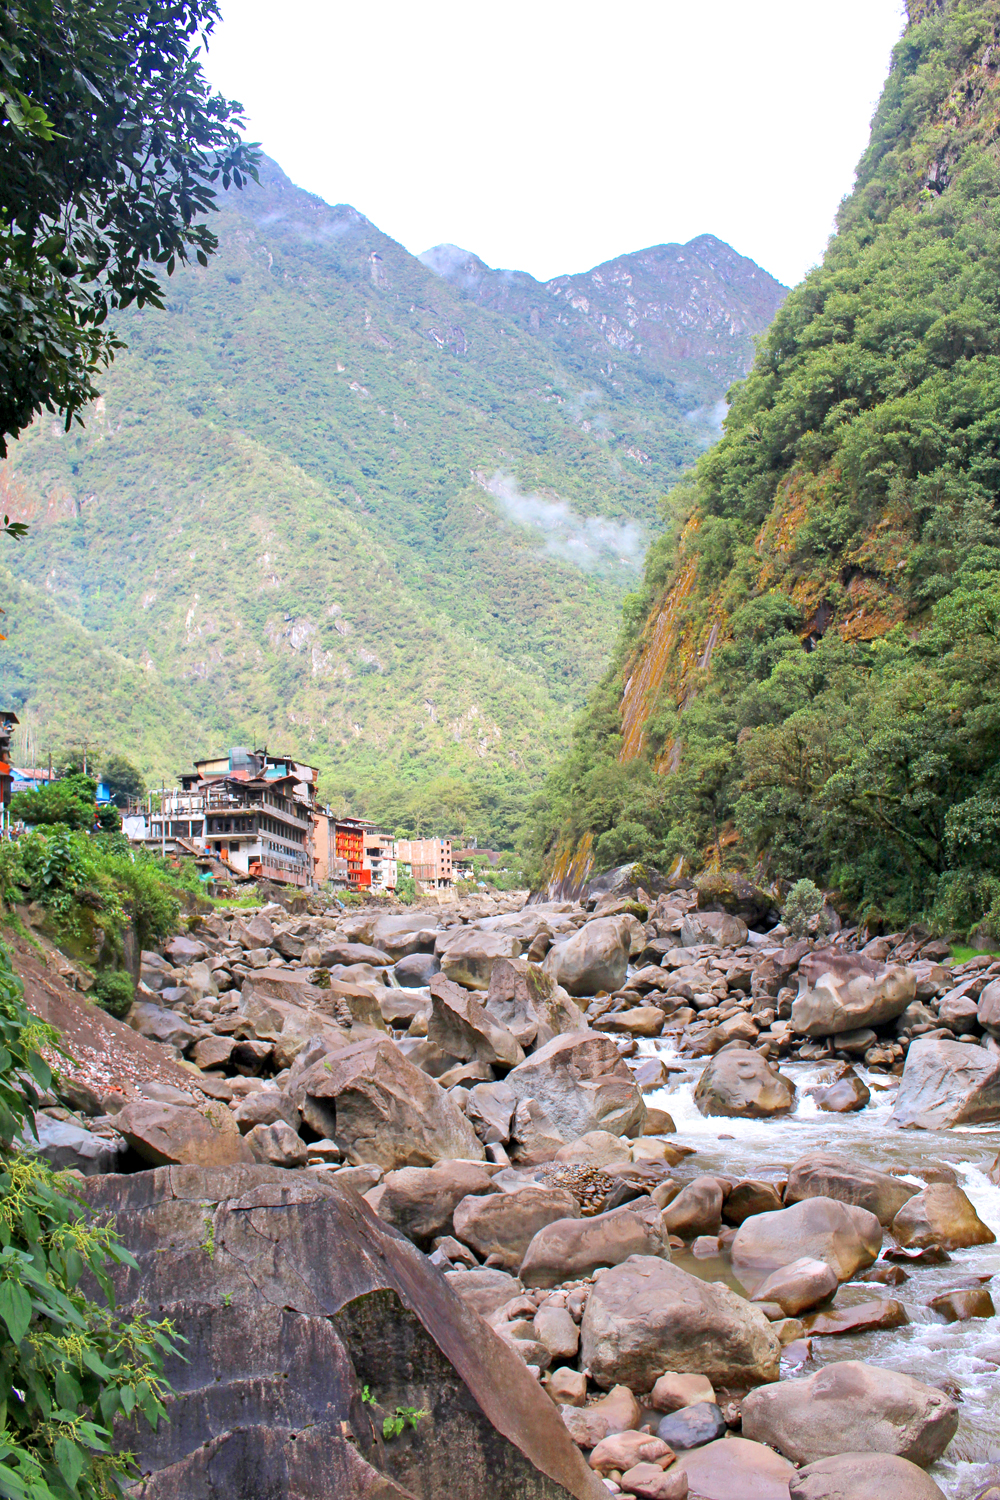 Hot stones at Aguas Calientes, Peru - lifestyle & travel blog